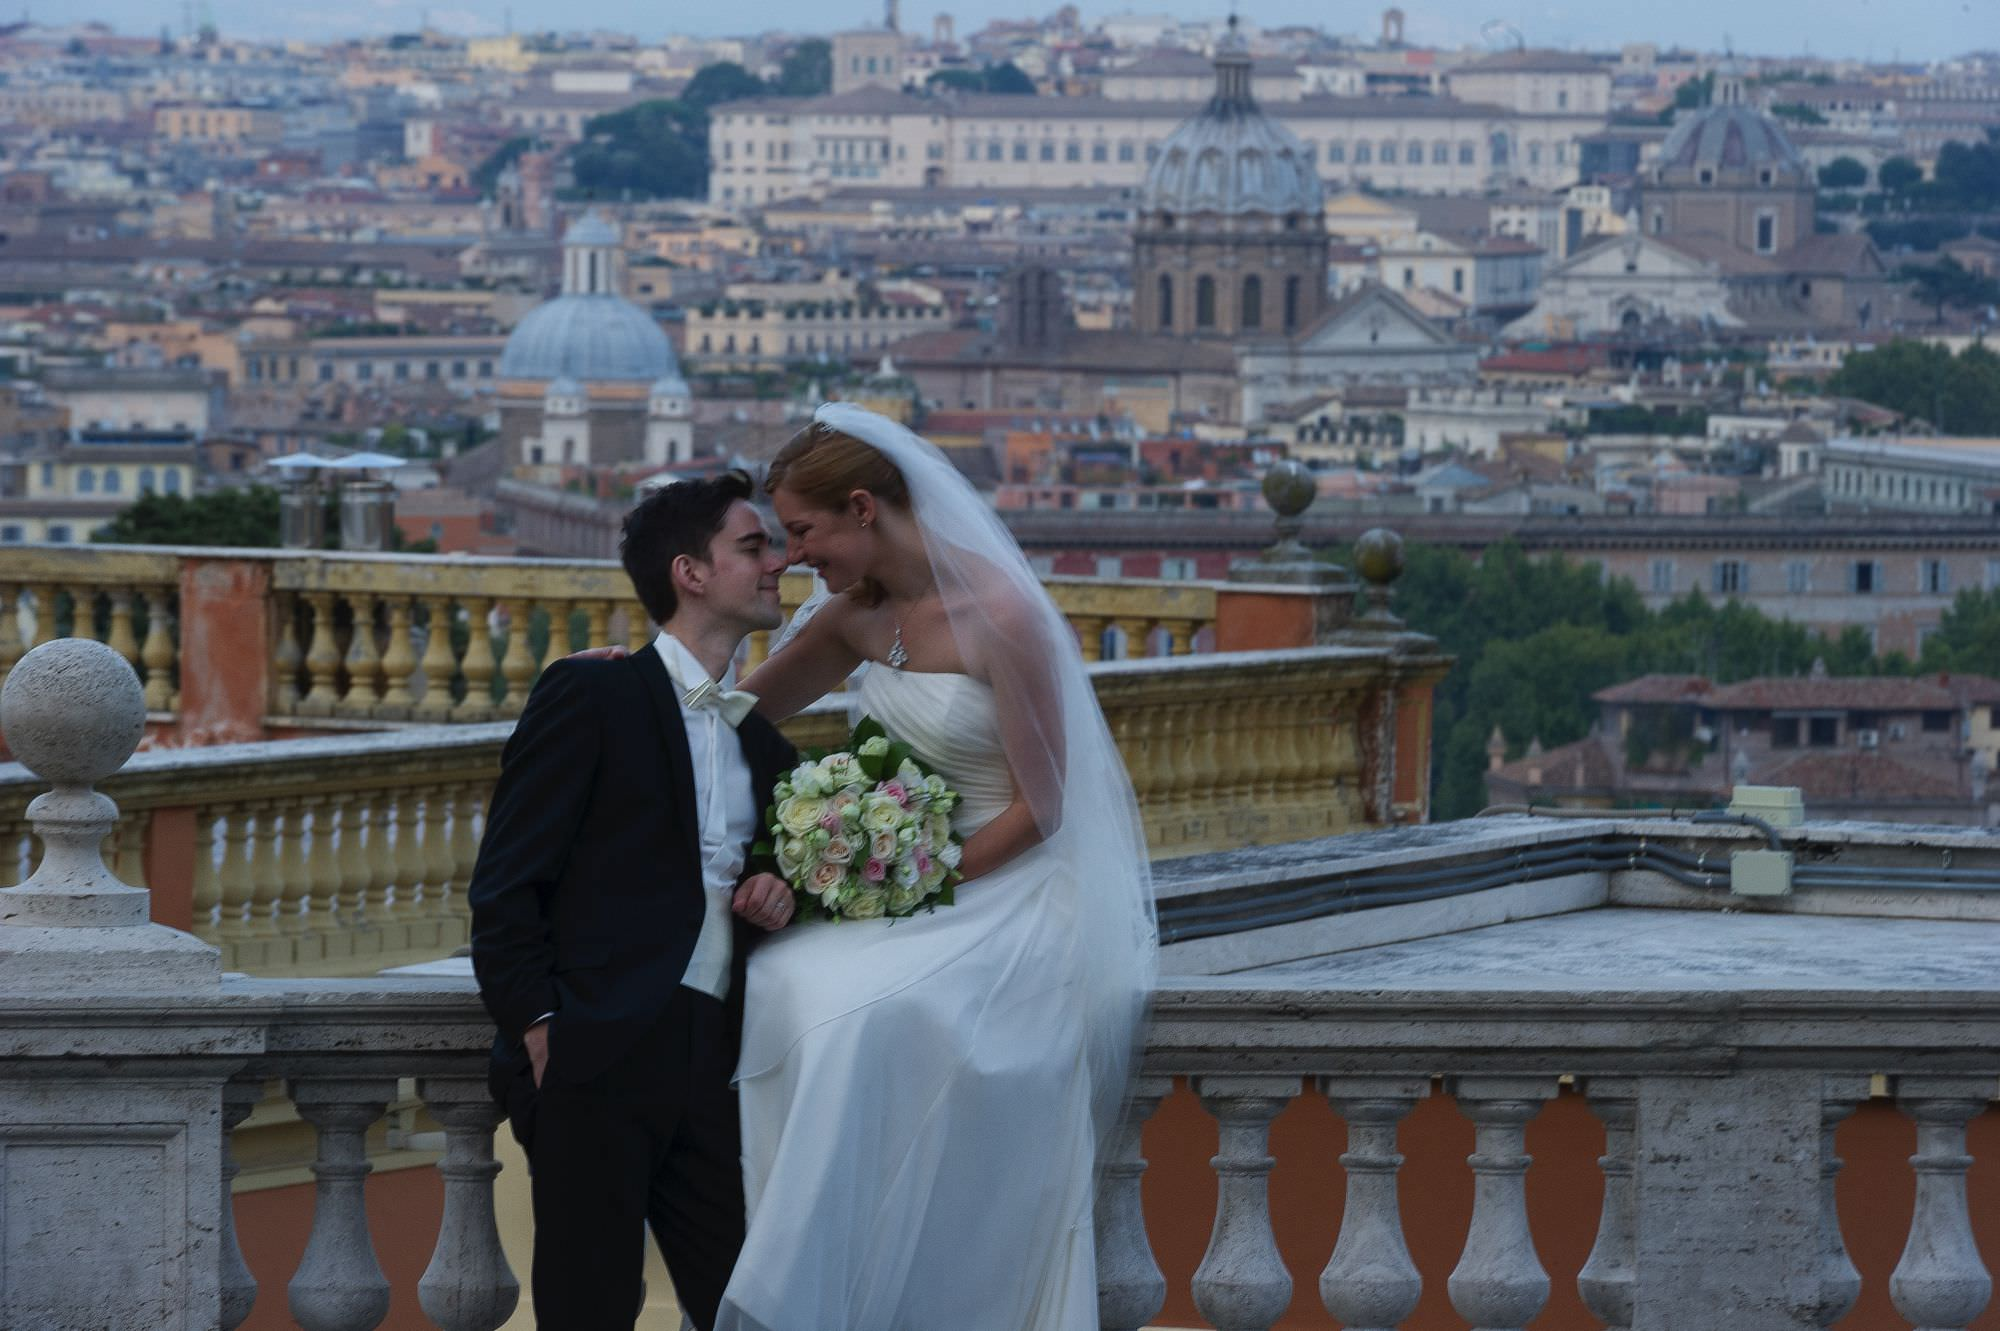 Weddings in Rome, Italy